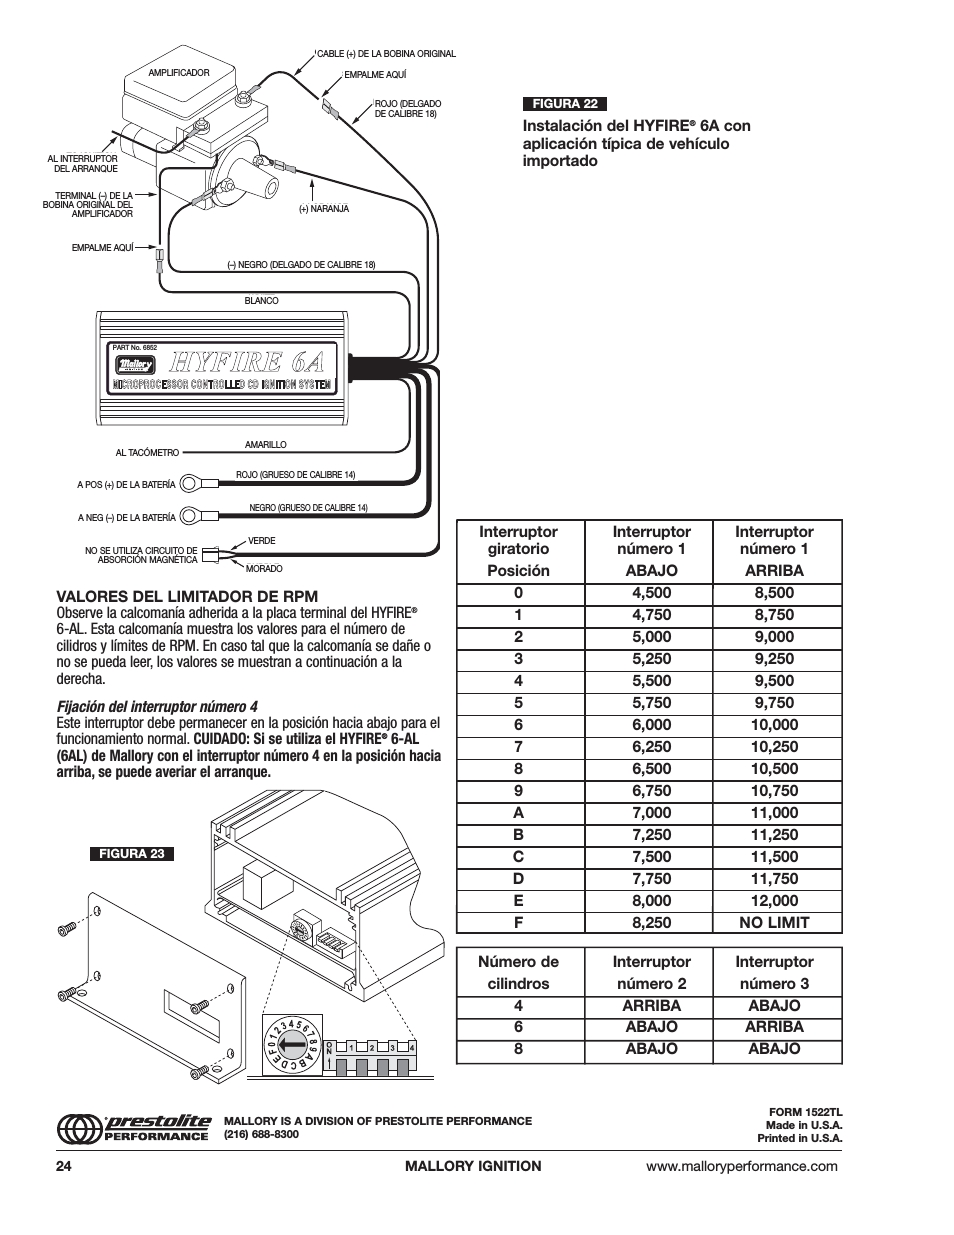 medium resolution of mallory ignition wiring diagram hhy yf fiir re e 6 6a a 5n